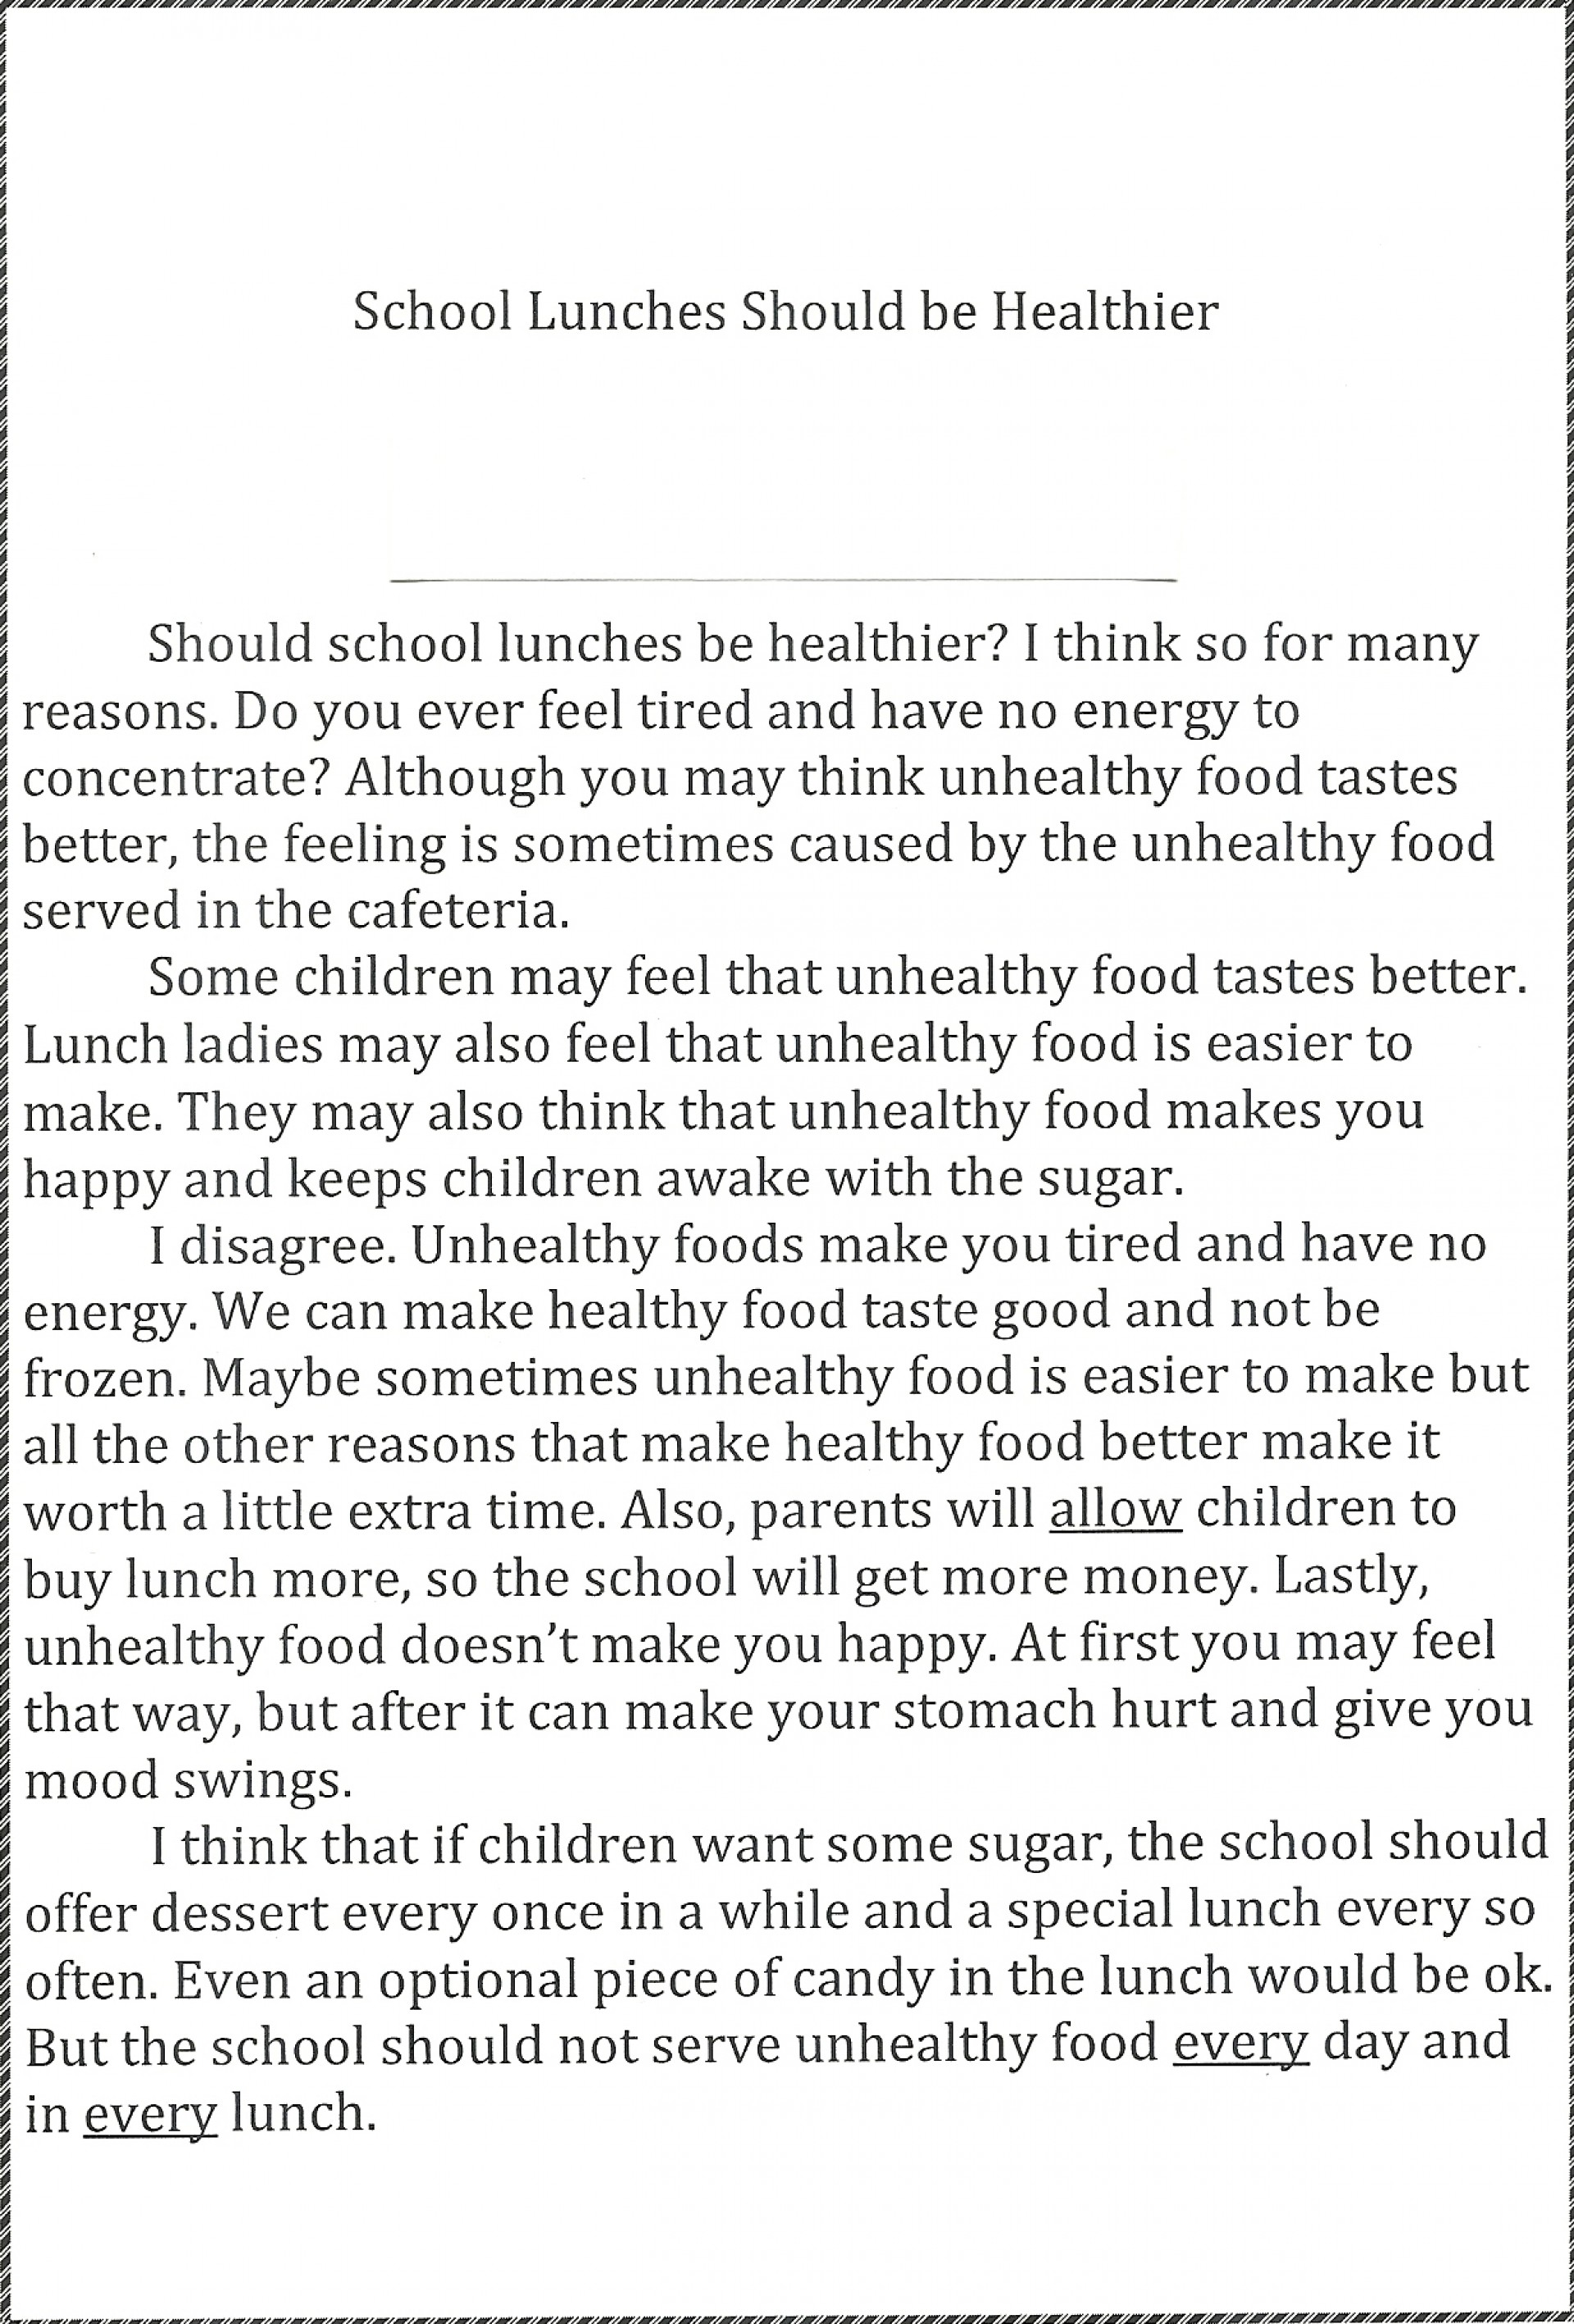 012 Persuasive Essayss Thoughtsonschoollunches Essay Stupendous Essays Examples For 5th Grade 11 High School Pdf 1920